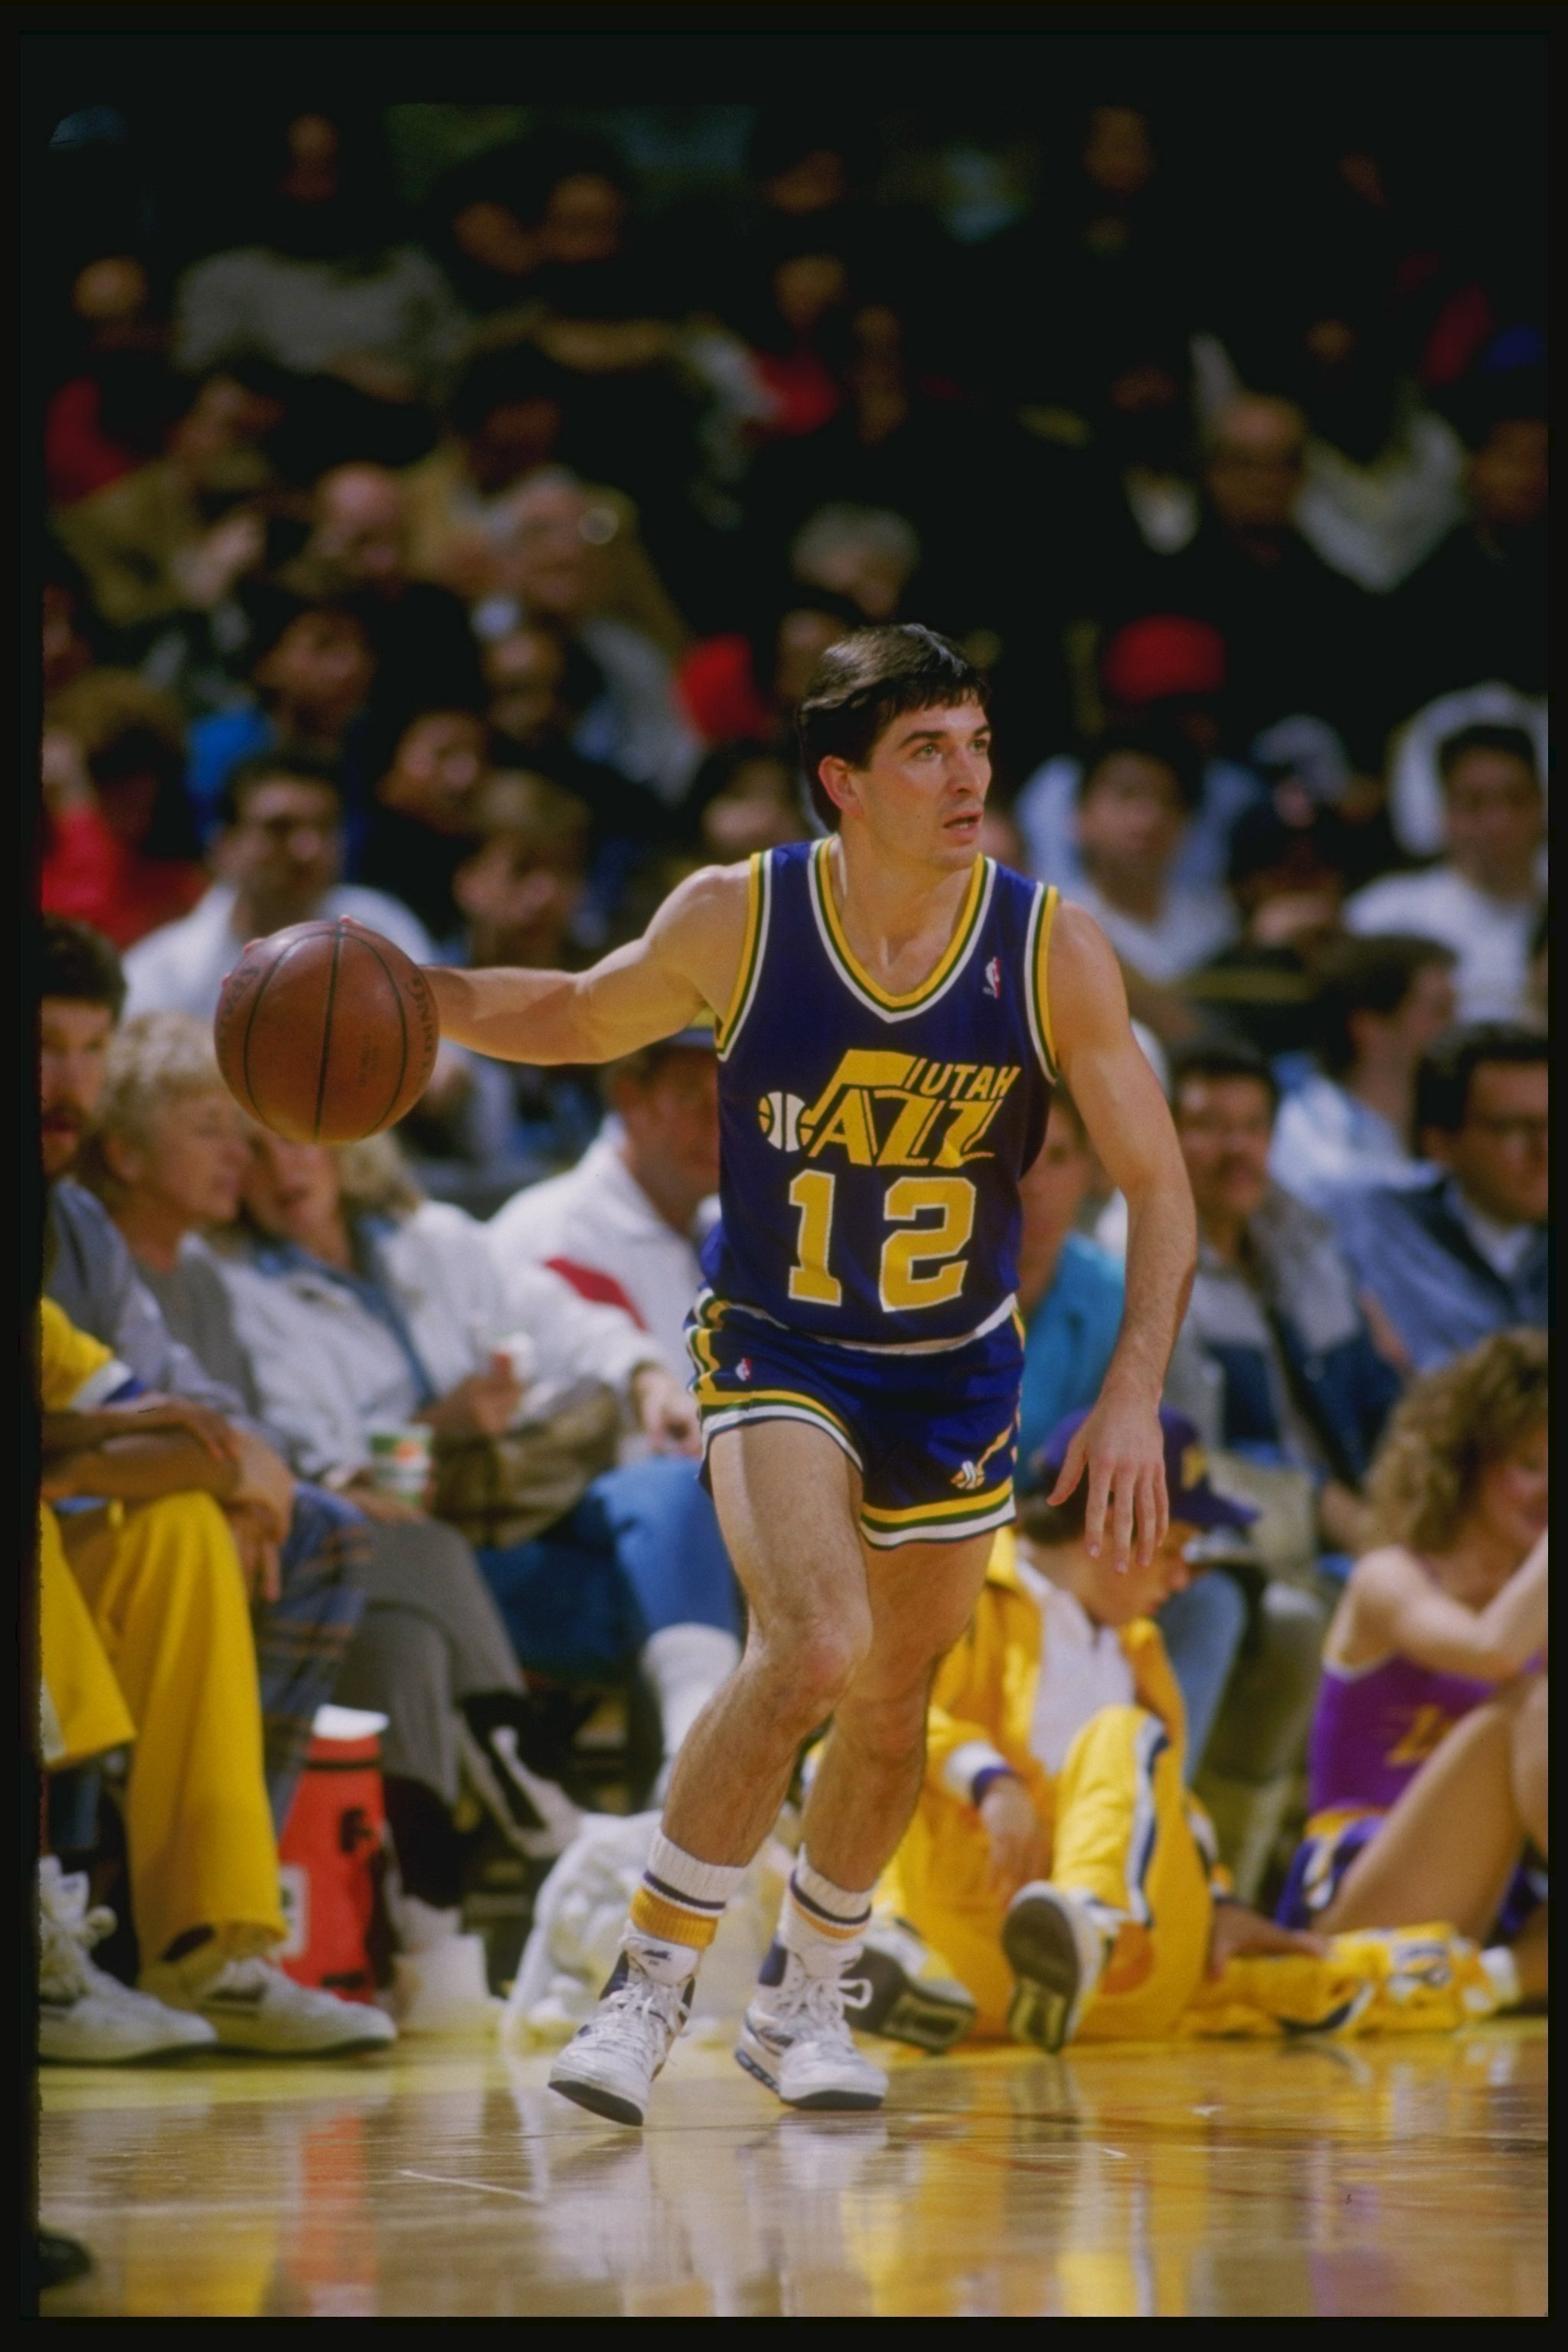 Guard John Stockton of the Utah Jazz dribbles the ball down the court during a game against the Los Angeles Lakers at the Great Western Forum in Inglewood, California.